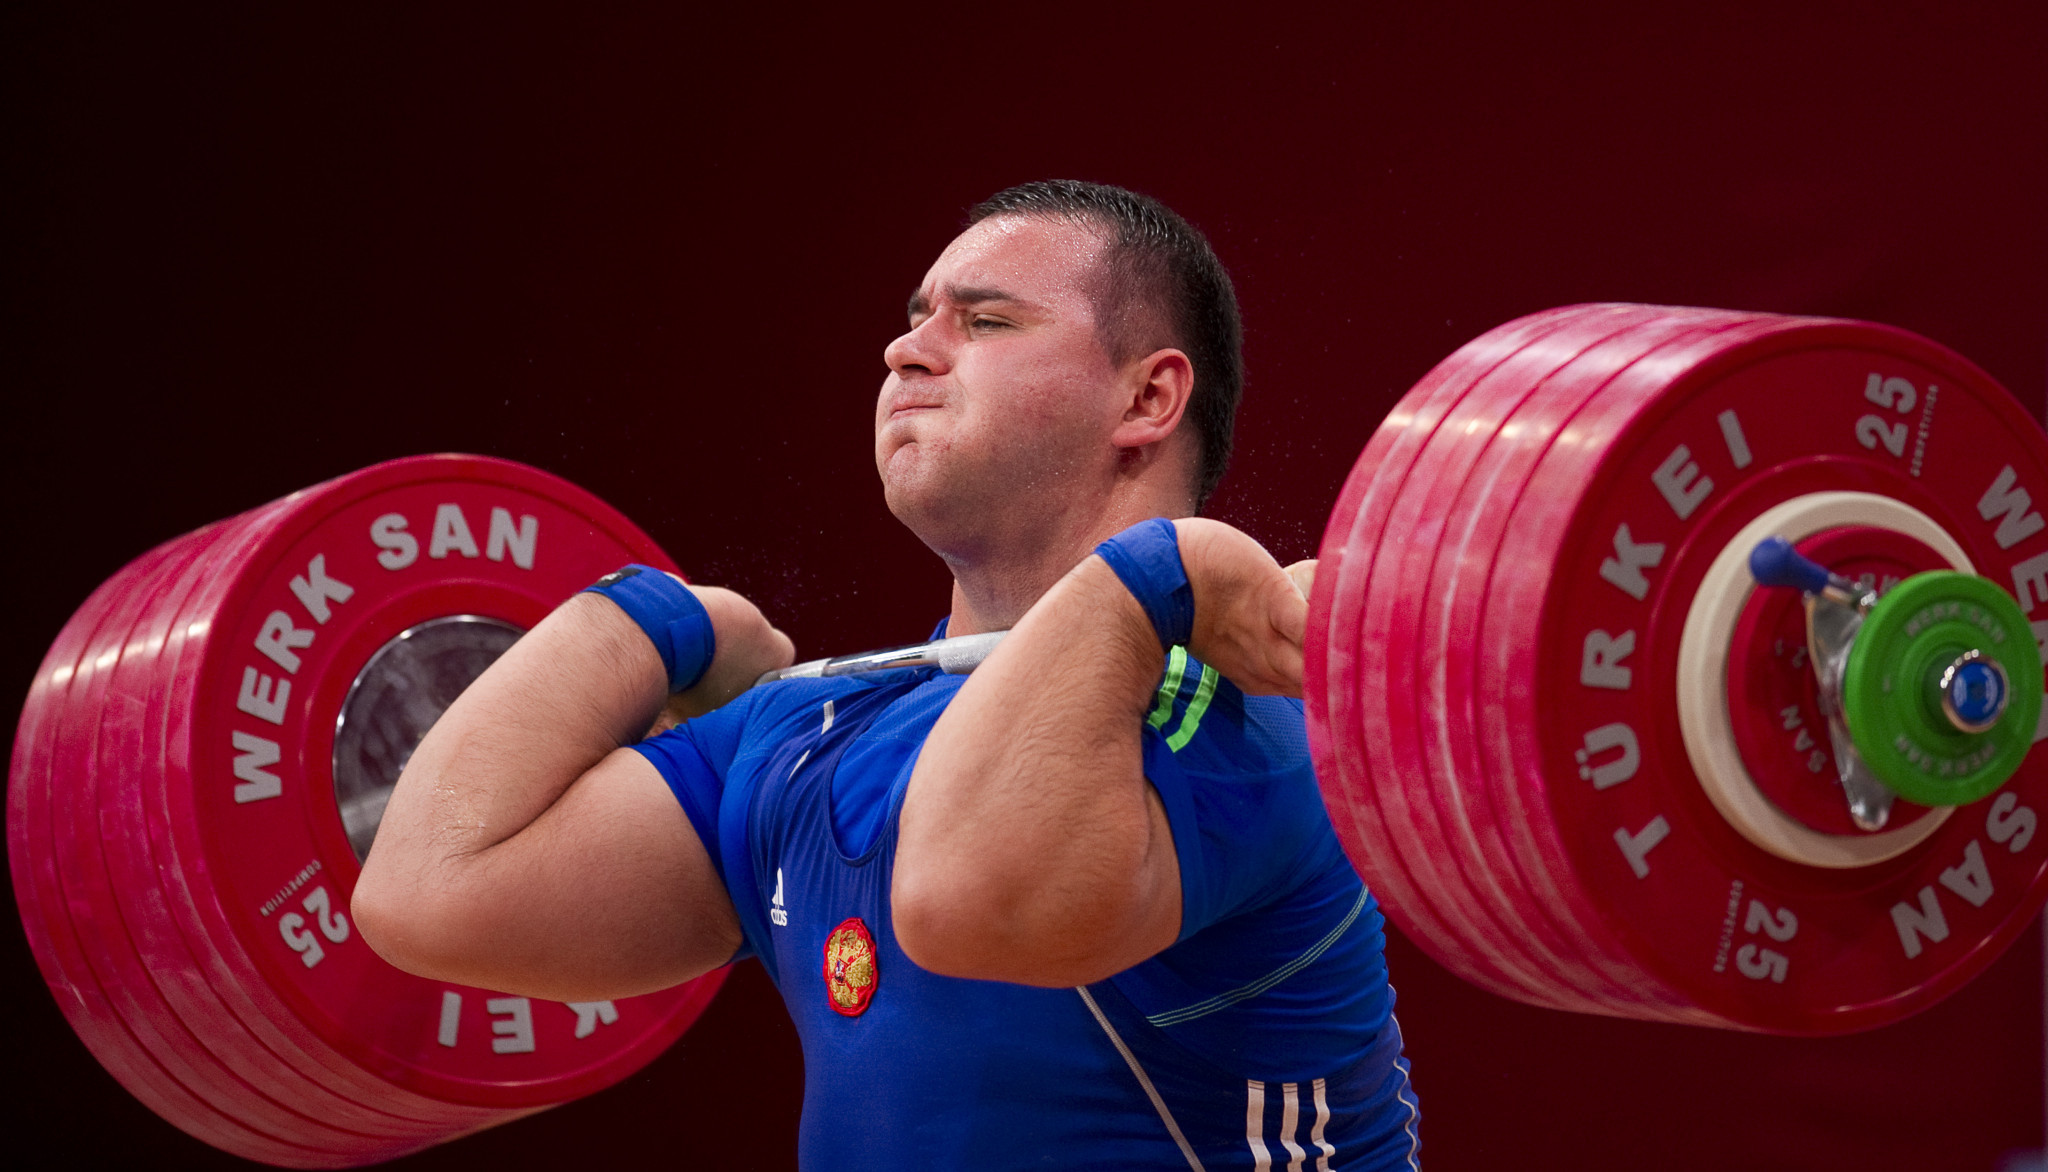 Two Russian weightlifters have provisional suspensions lifted, lawyer claims